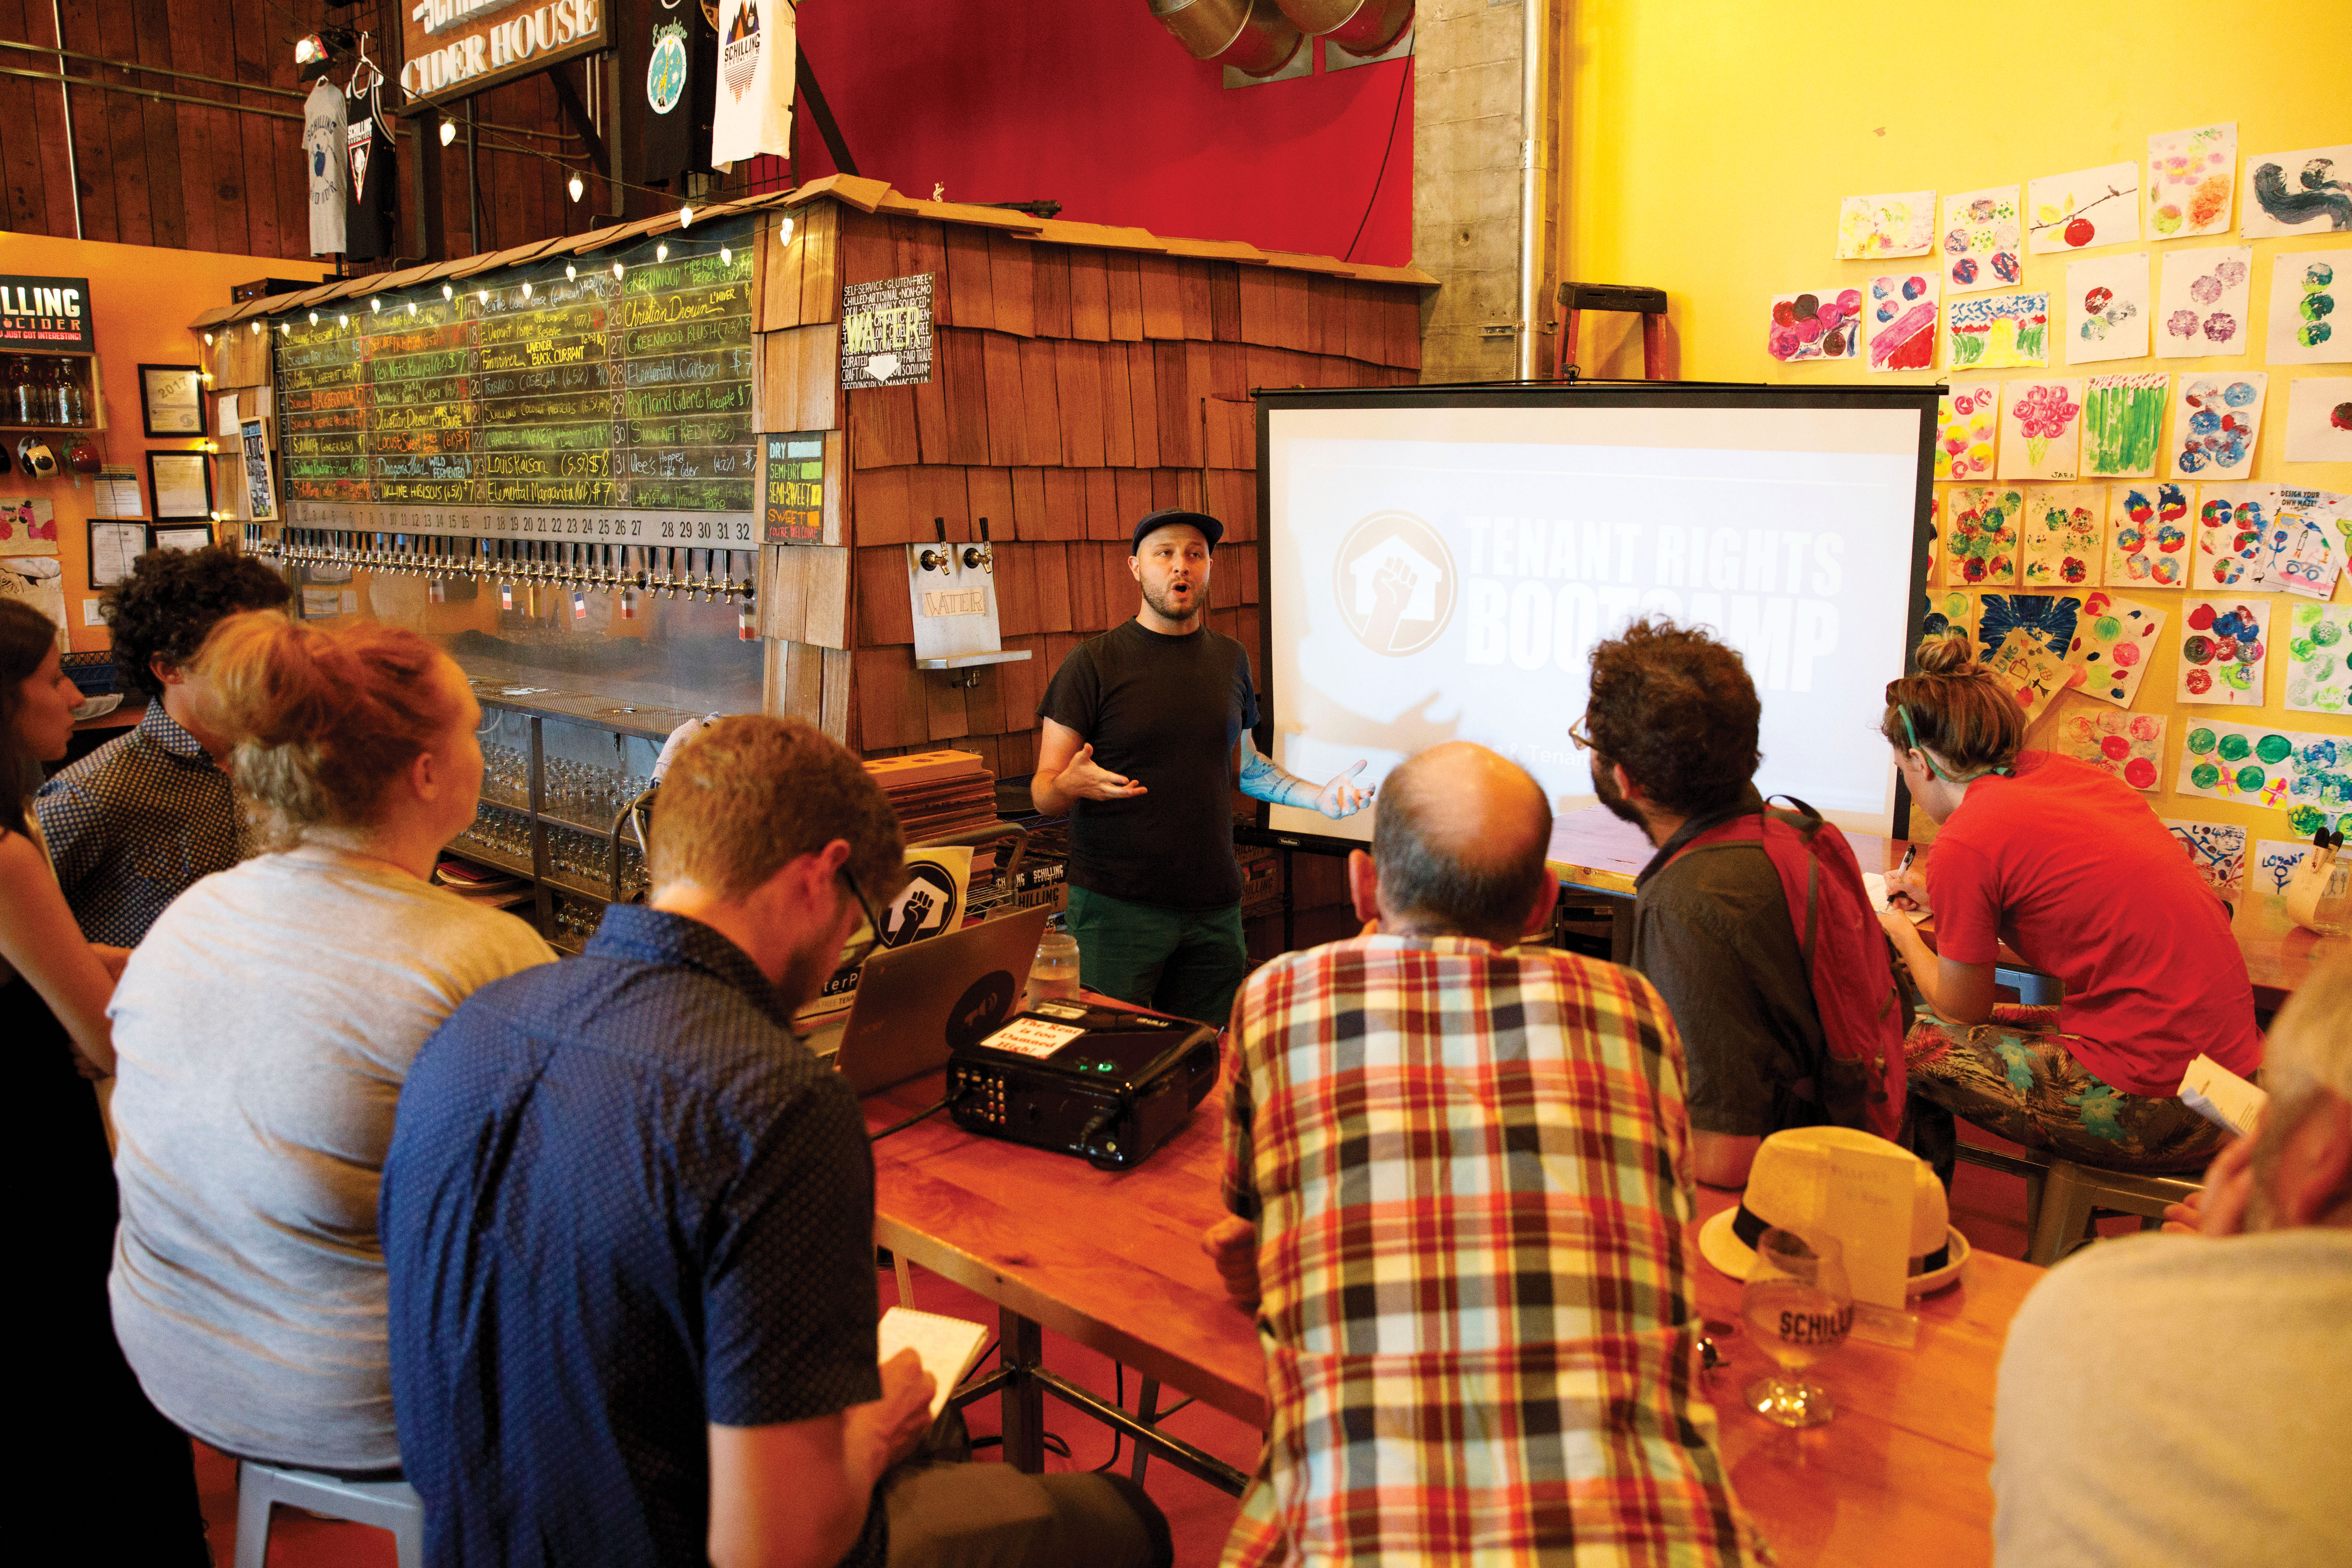 Devin Silvernail, center, leads a Tenant Rights Bootcamp on Wednesday, July 25, 2018 at Schilling Cider House in Fremont, Seattle, WA. The event was hosted by Be:Seattle and provided information on Seattle tenants rights. (Sarah Hoffman/Crosscut)